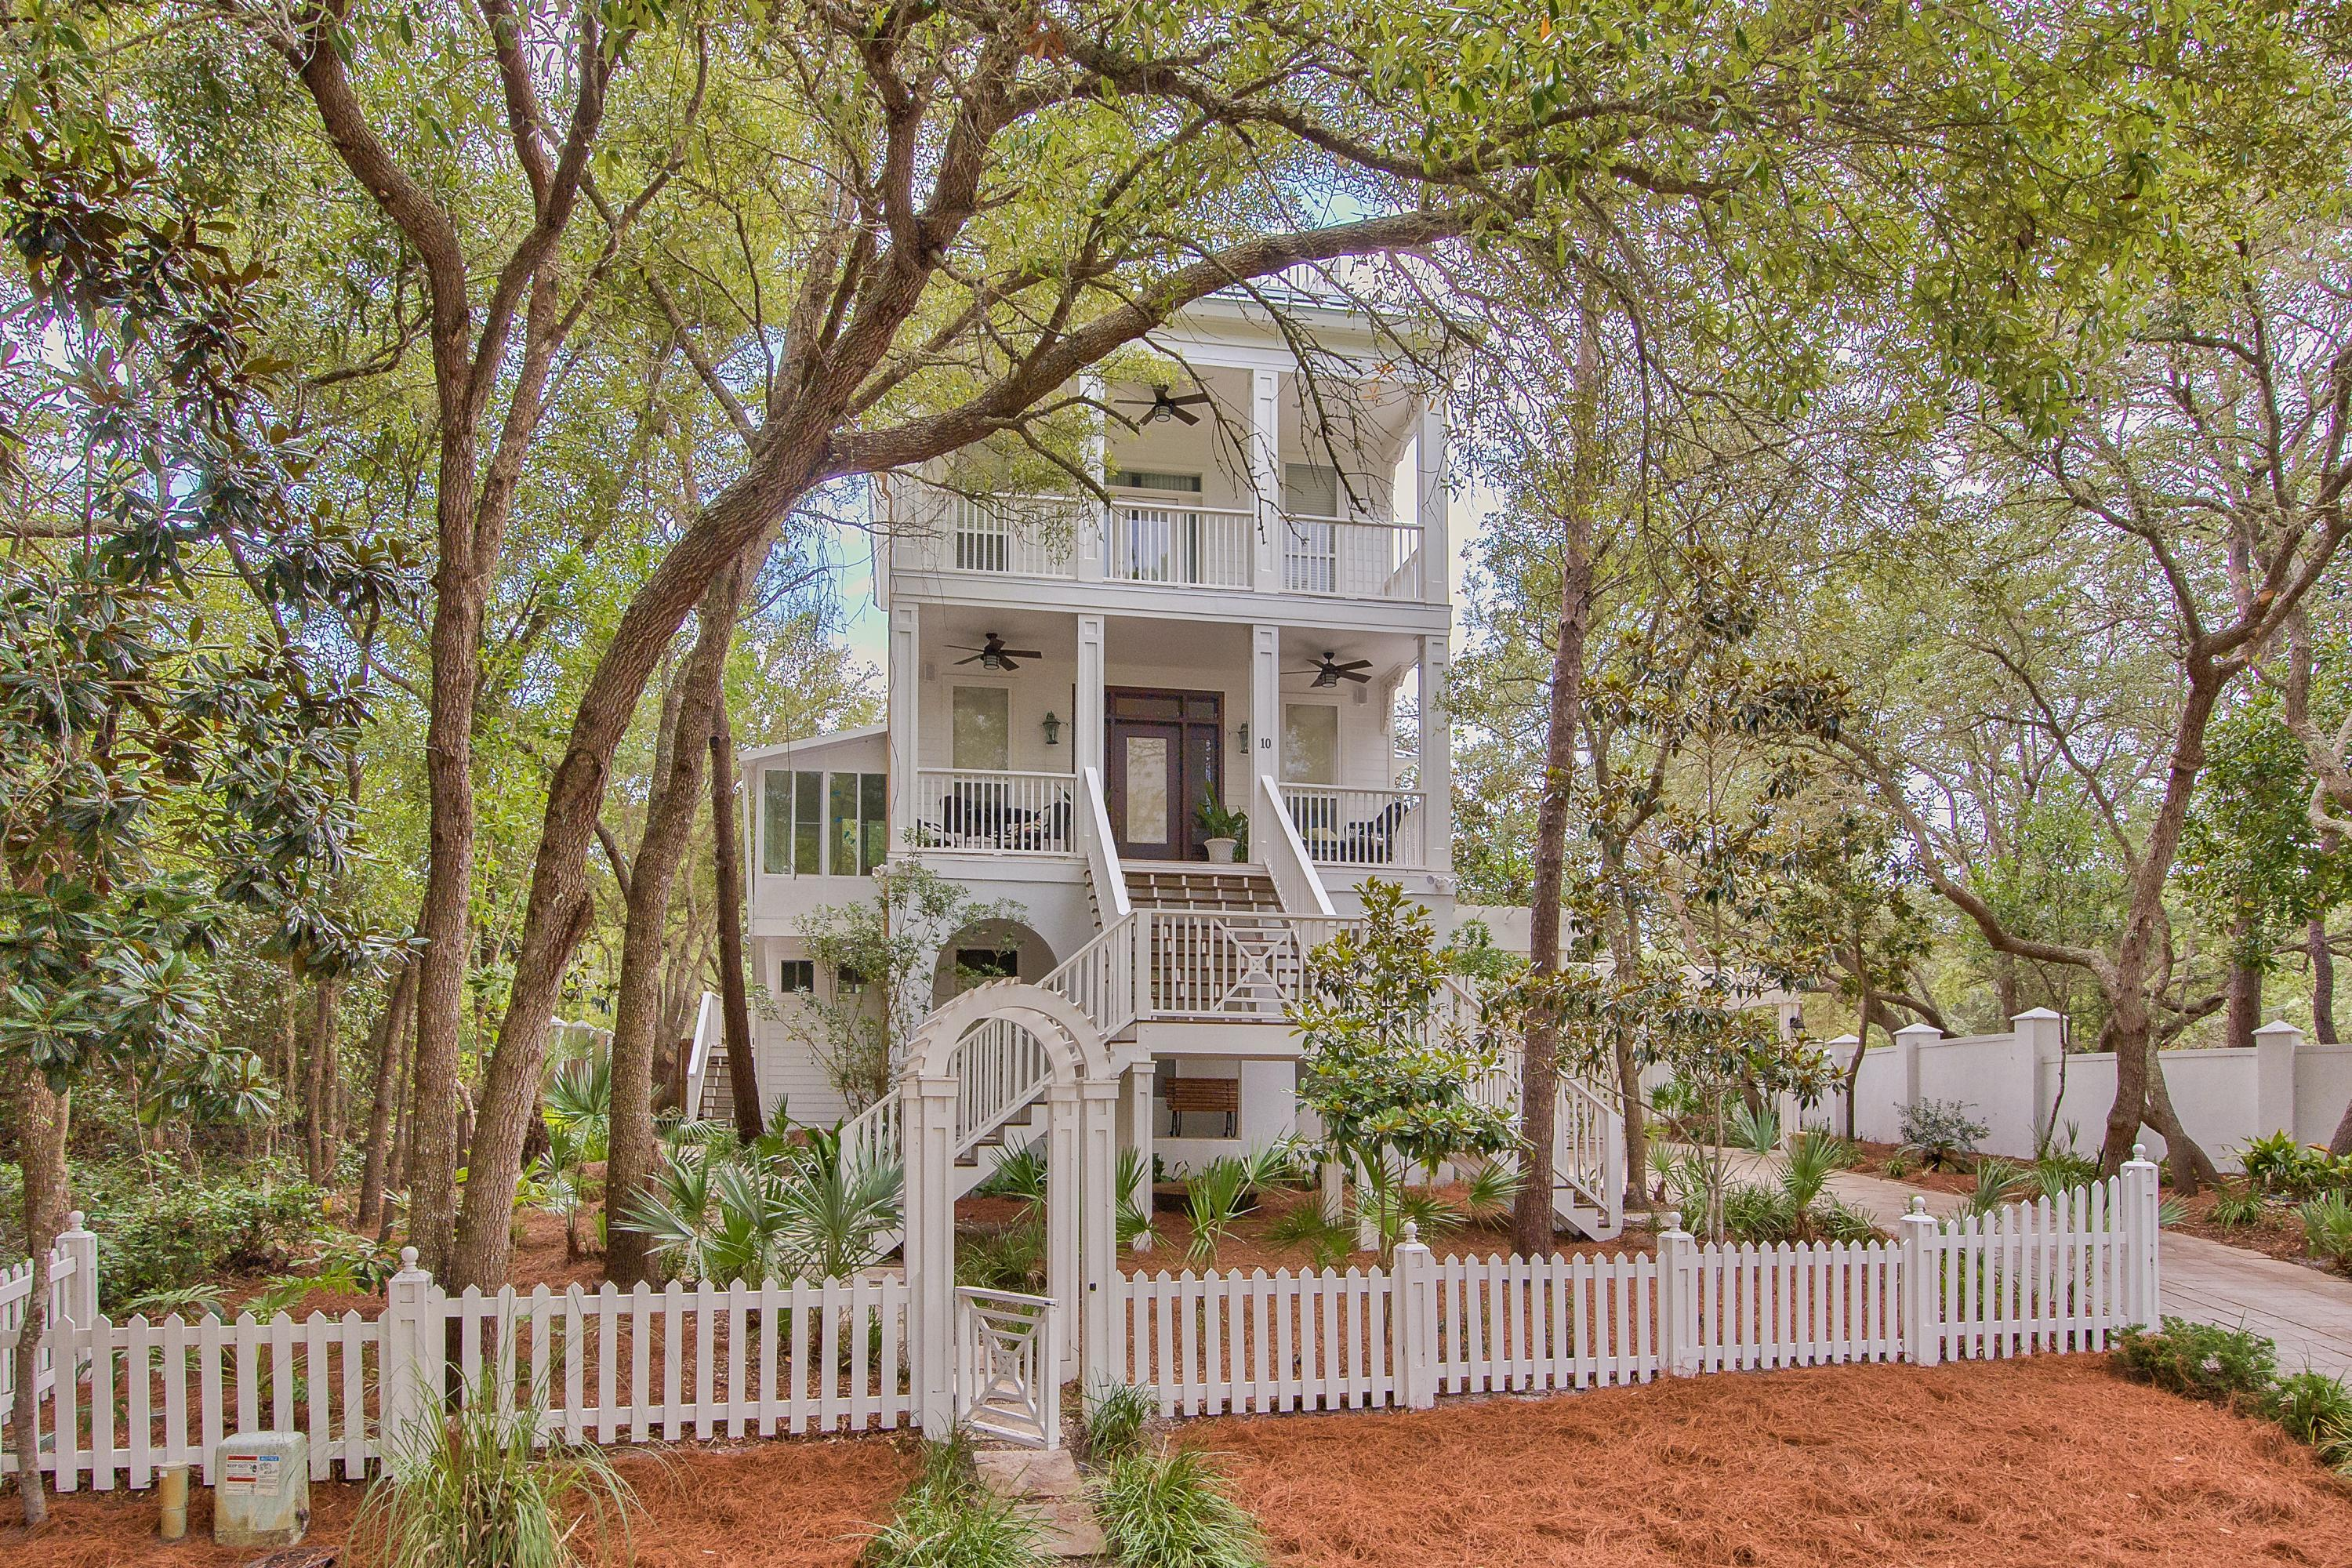 This southern coastal charm home is truly one of a kind, offering an idyllic opportunity for a prima